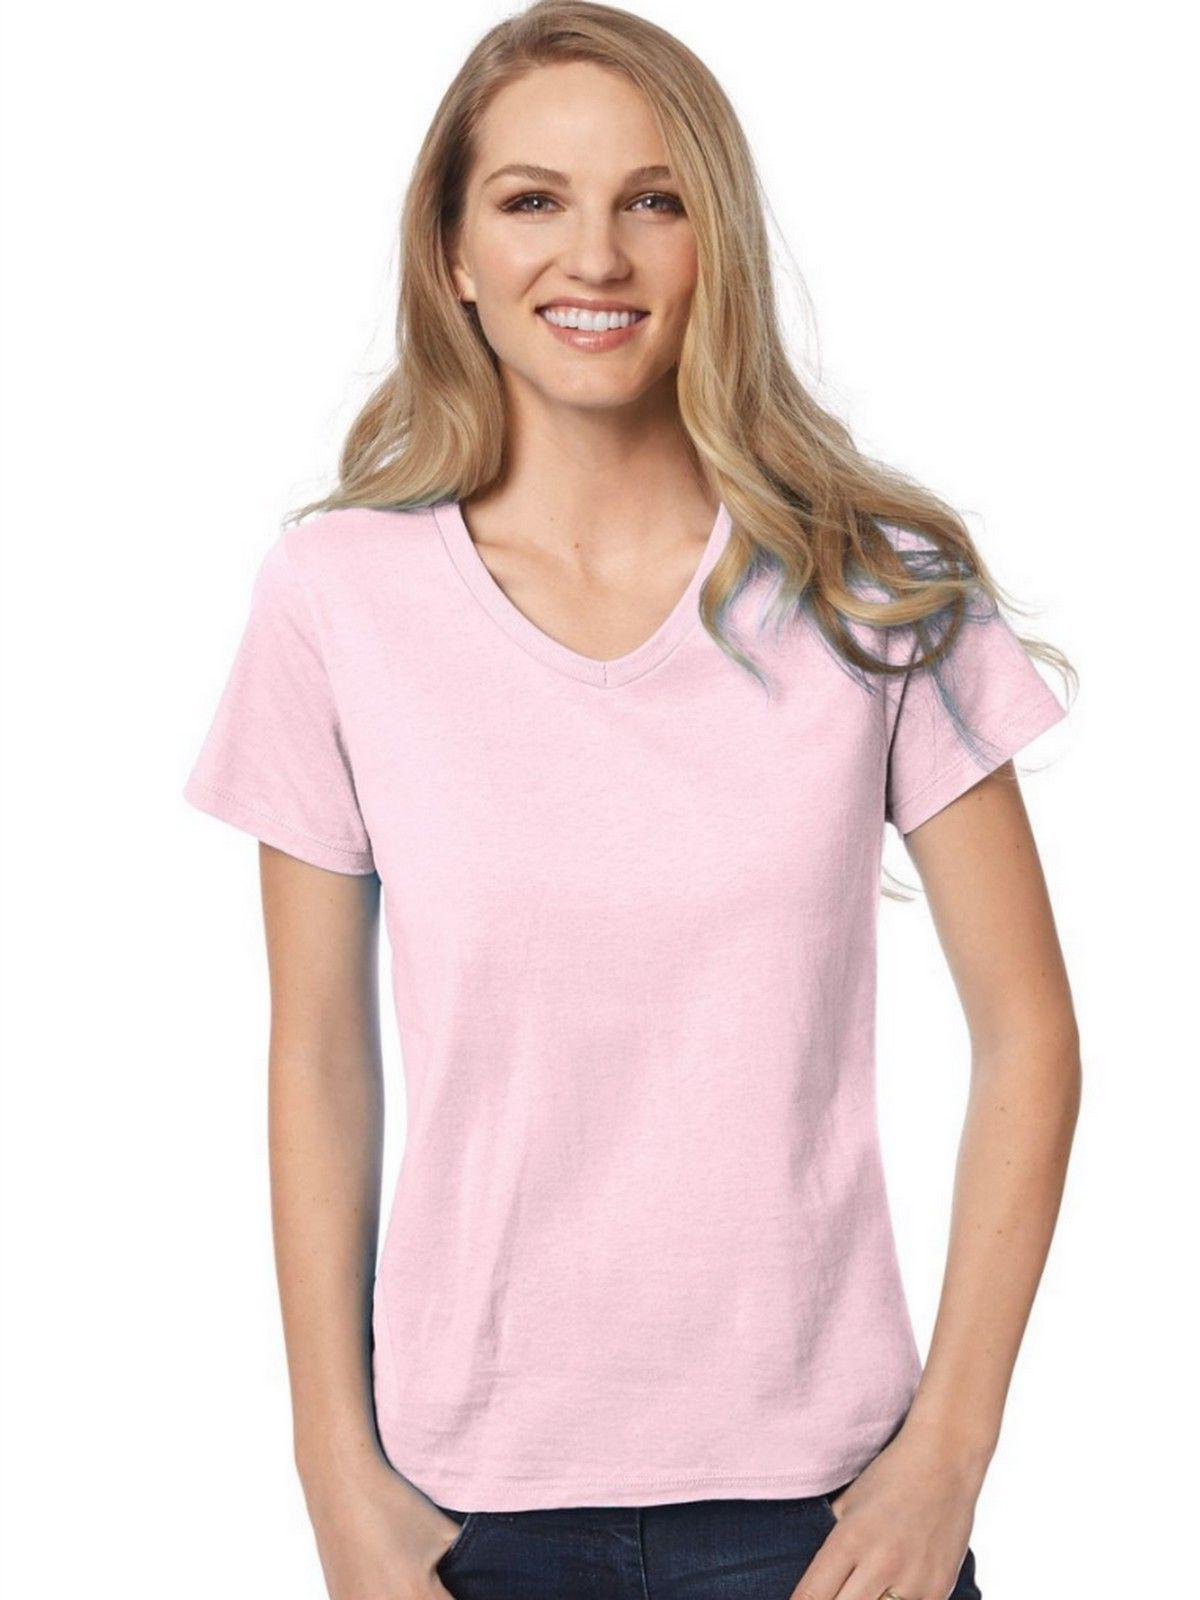 Hanes Relaxed Fit V-neck TWO GET -- 5780